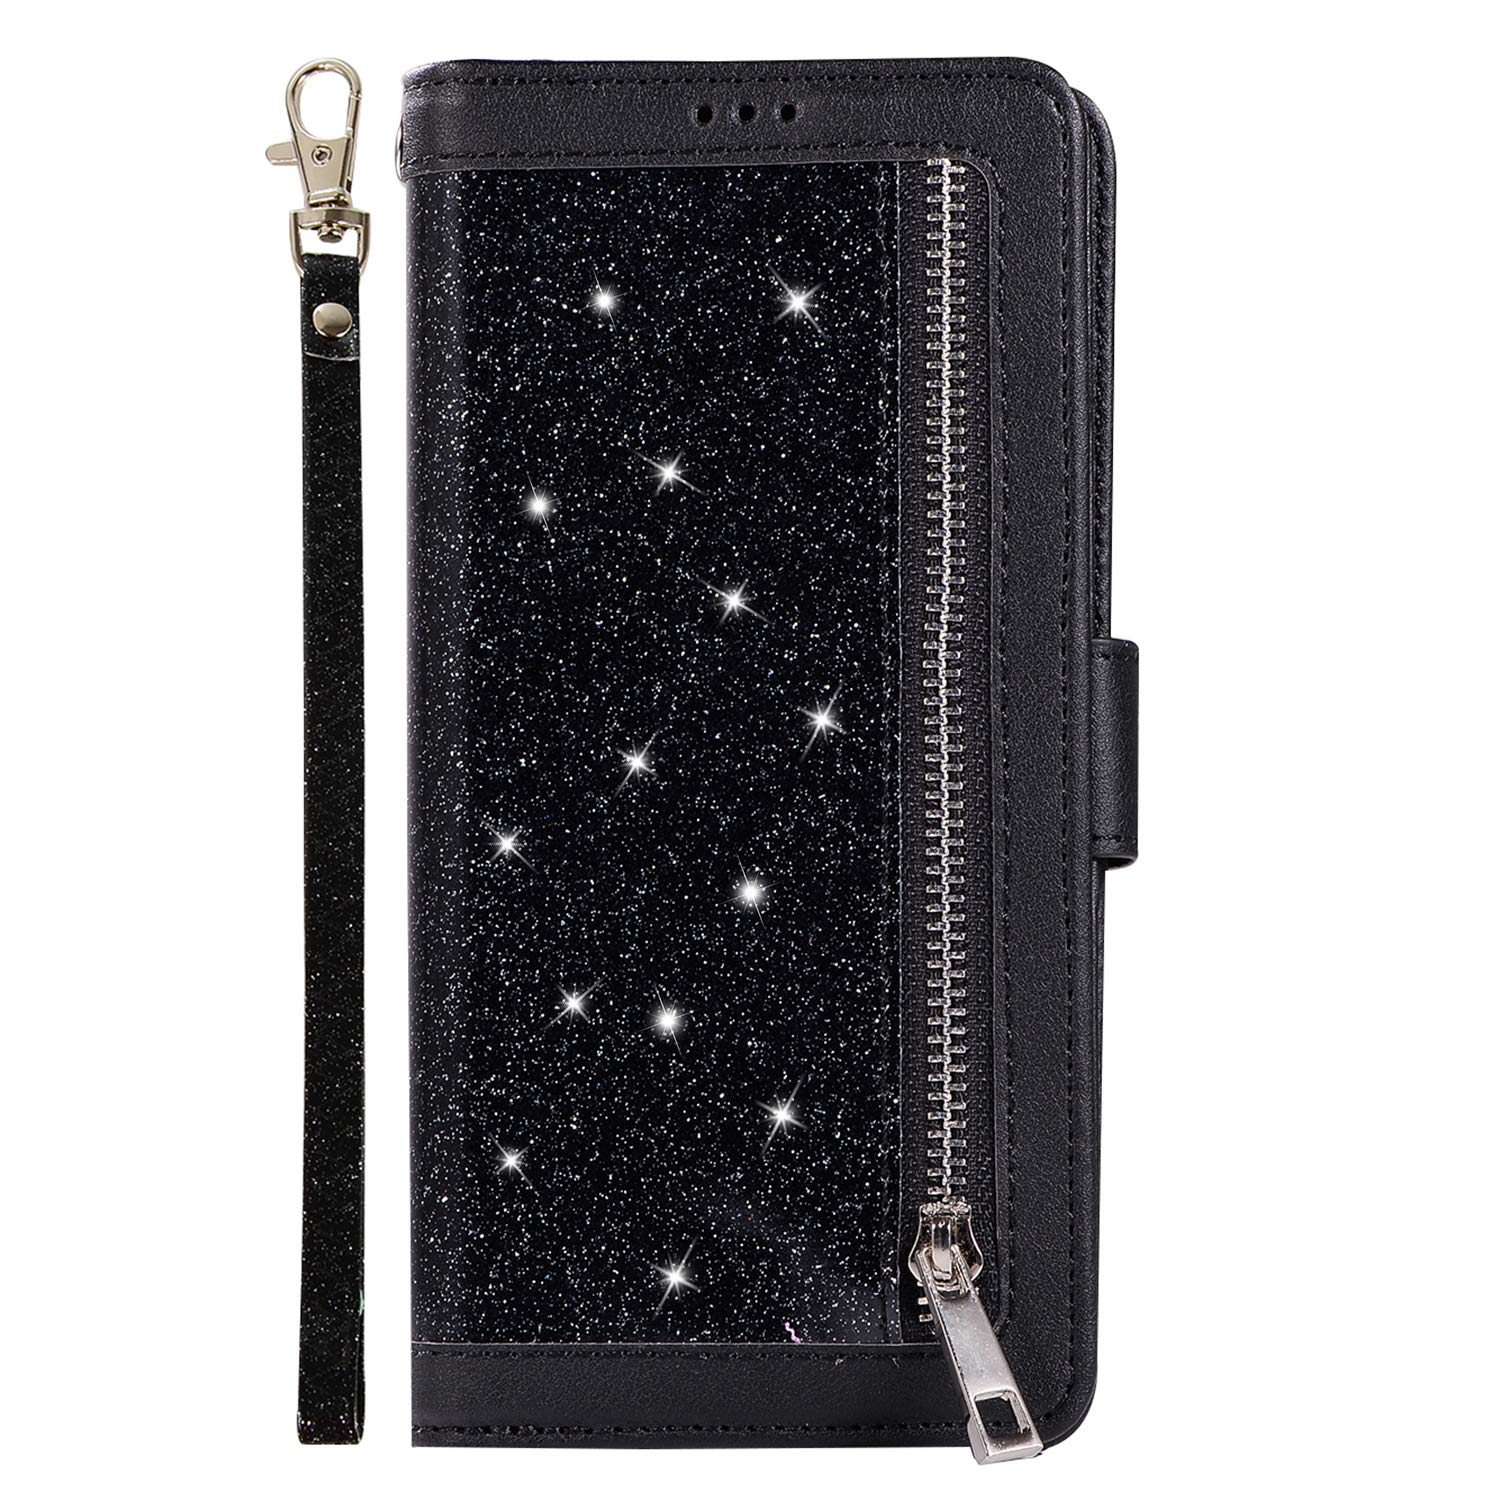 Shinyzone Glitter PU Case for Samsung Galaxy S8,Wallet Leather Flip Case with Zipper Pocket,Bling Cover with 9 Card Holder and Wrist Strap Magnetic Stand Function,Black by Shinyzone (Image #2)